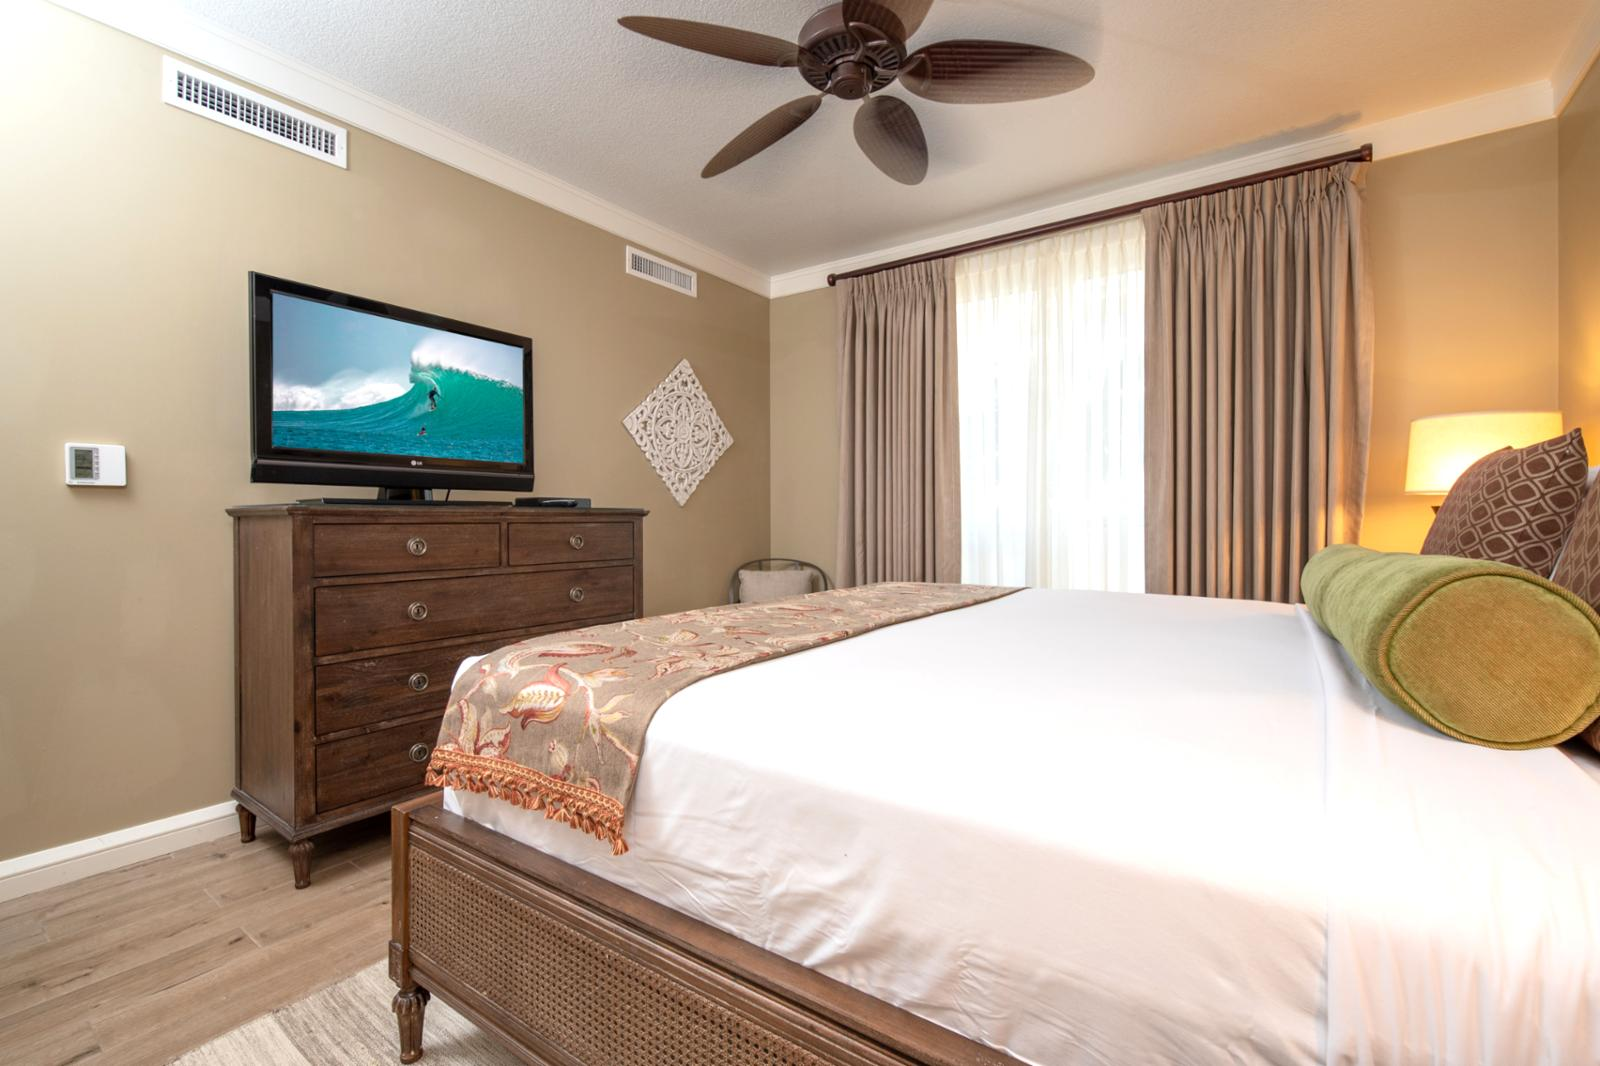 Large flat screen television and equipped with new ceiling fans